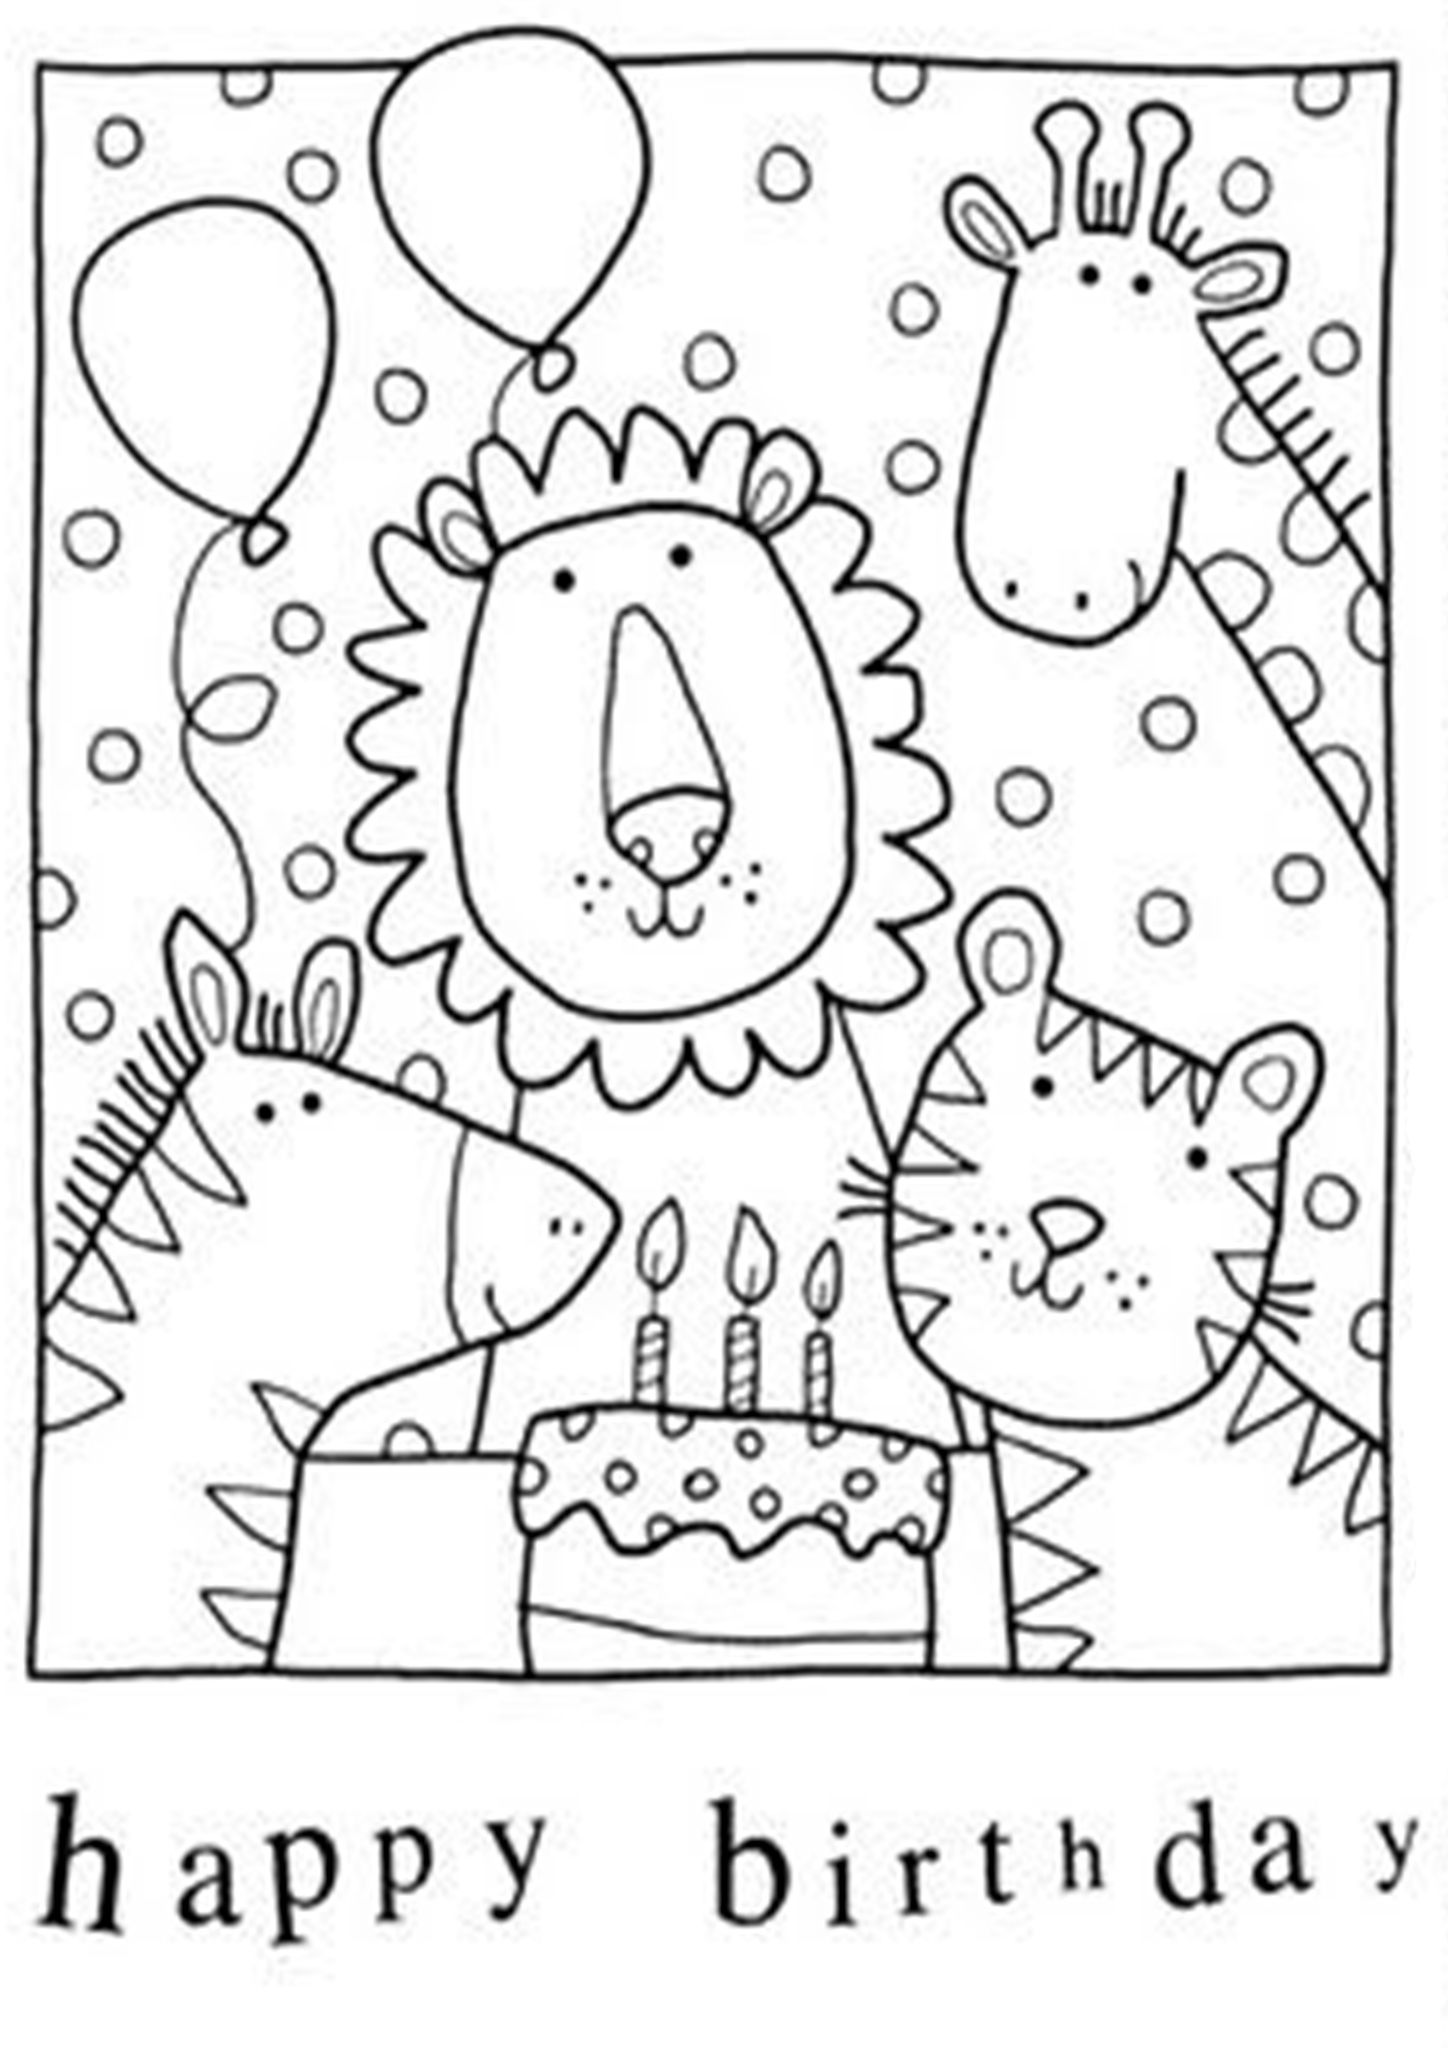 Free Easy To Print Happy Birthday Coloring Pages Happy Birthday Coloring Pages Birthday Coloring Pages Happy Birthday Printable